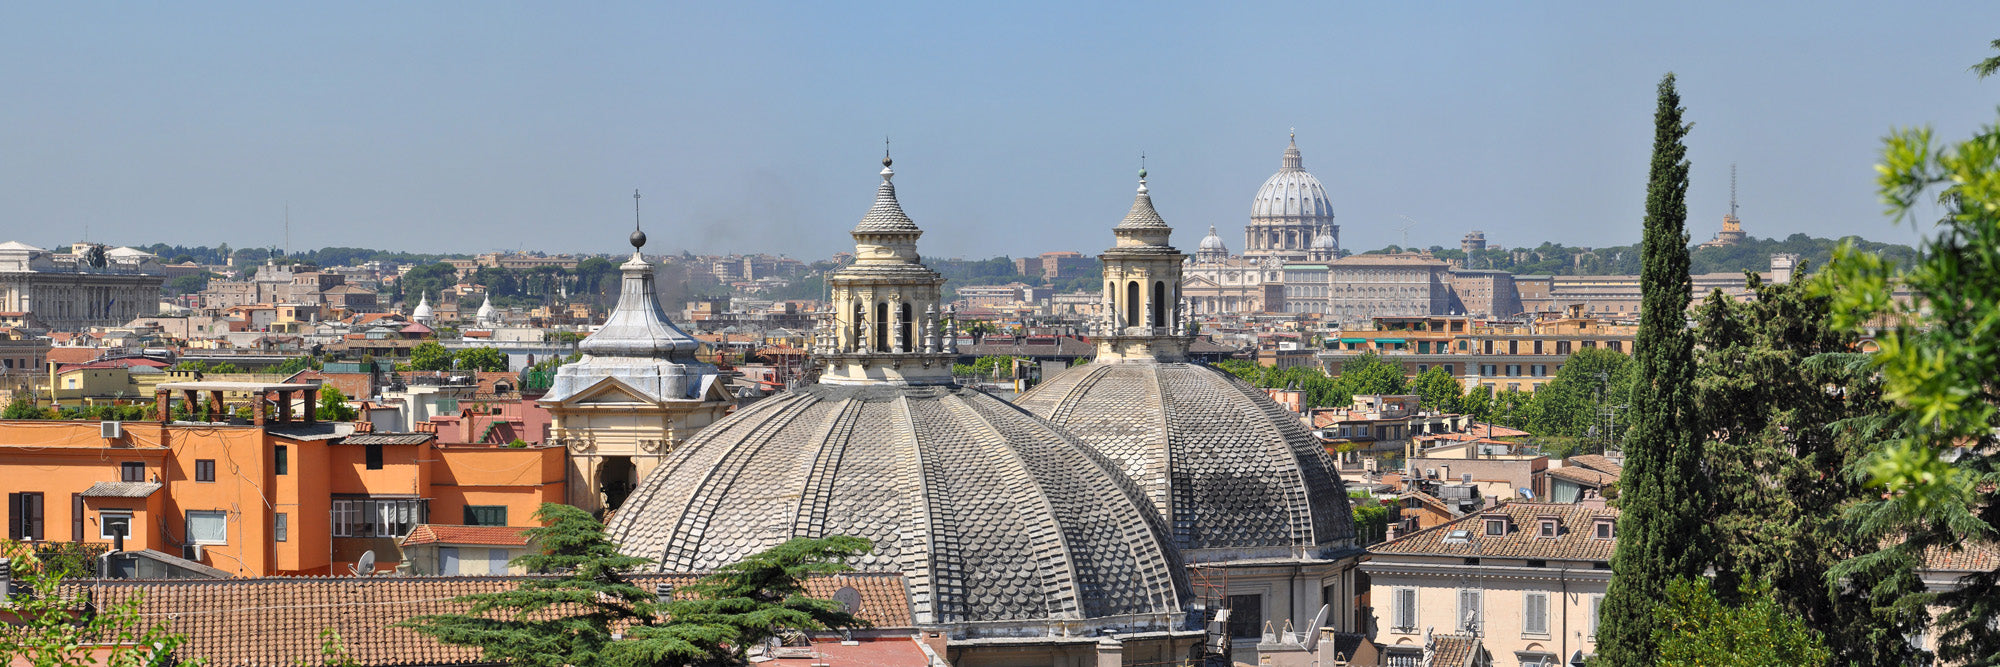 Skyline of Roma & Saint Peters's Basilica - Limited Edition 50 cm x 150 cm